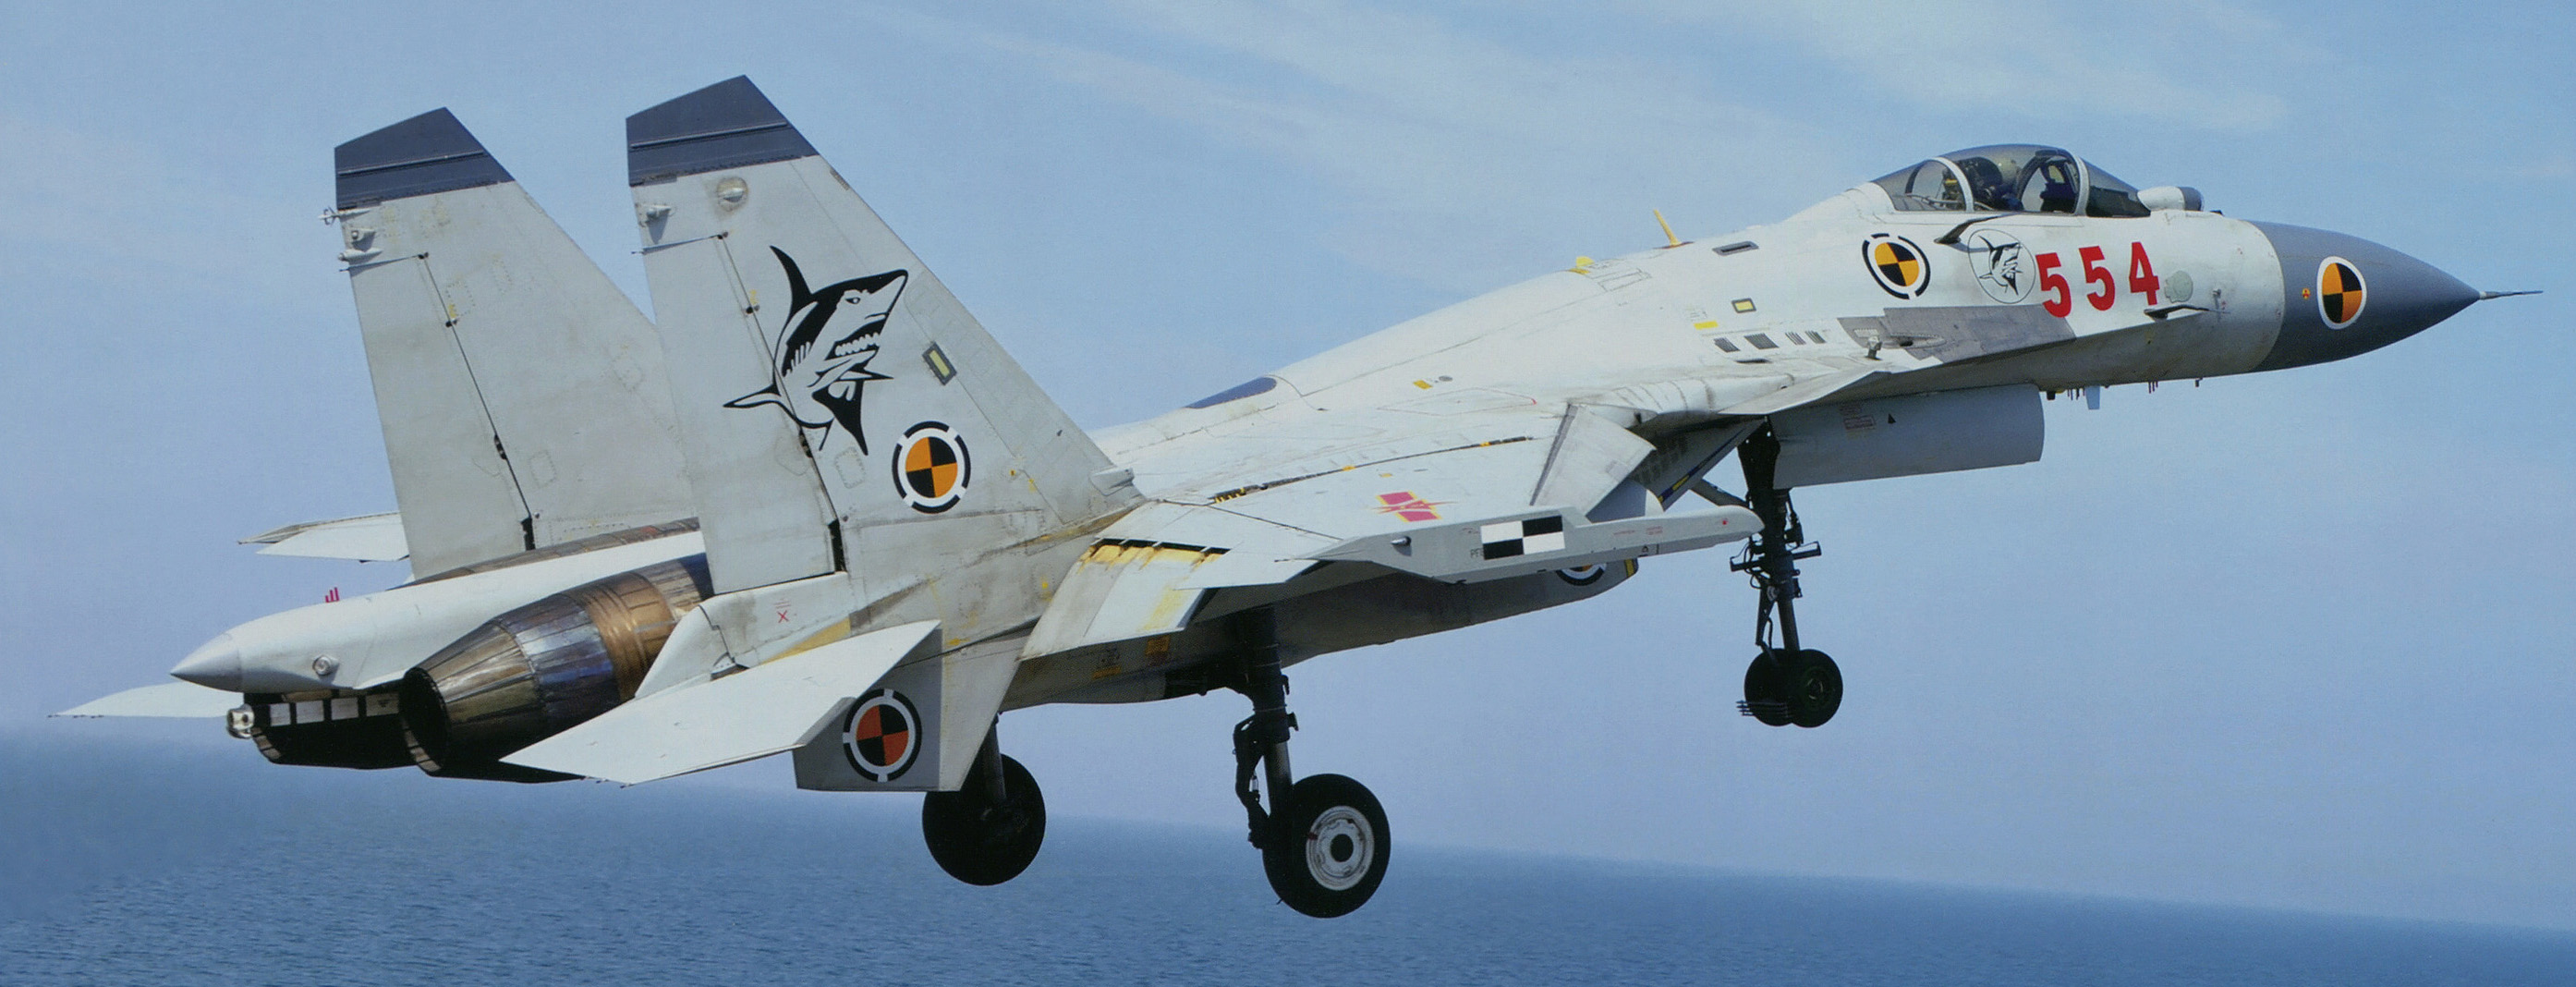 Shenyang J-15 Flying Shark - Prototype n°2